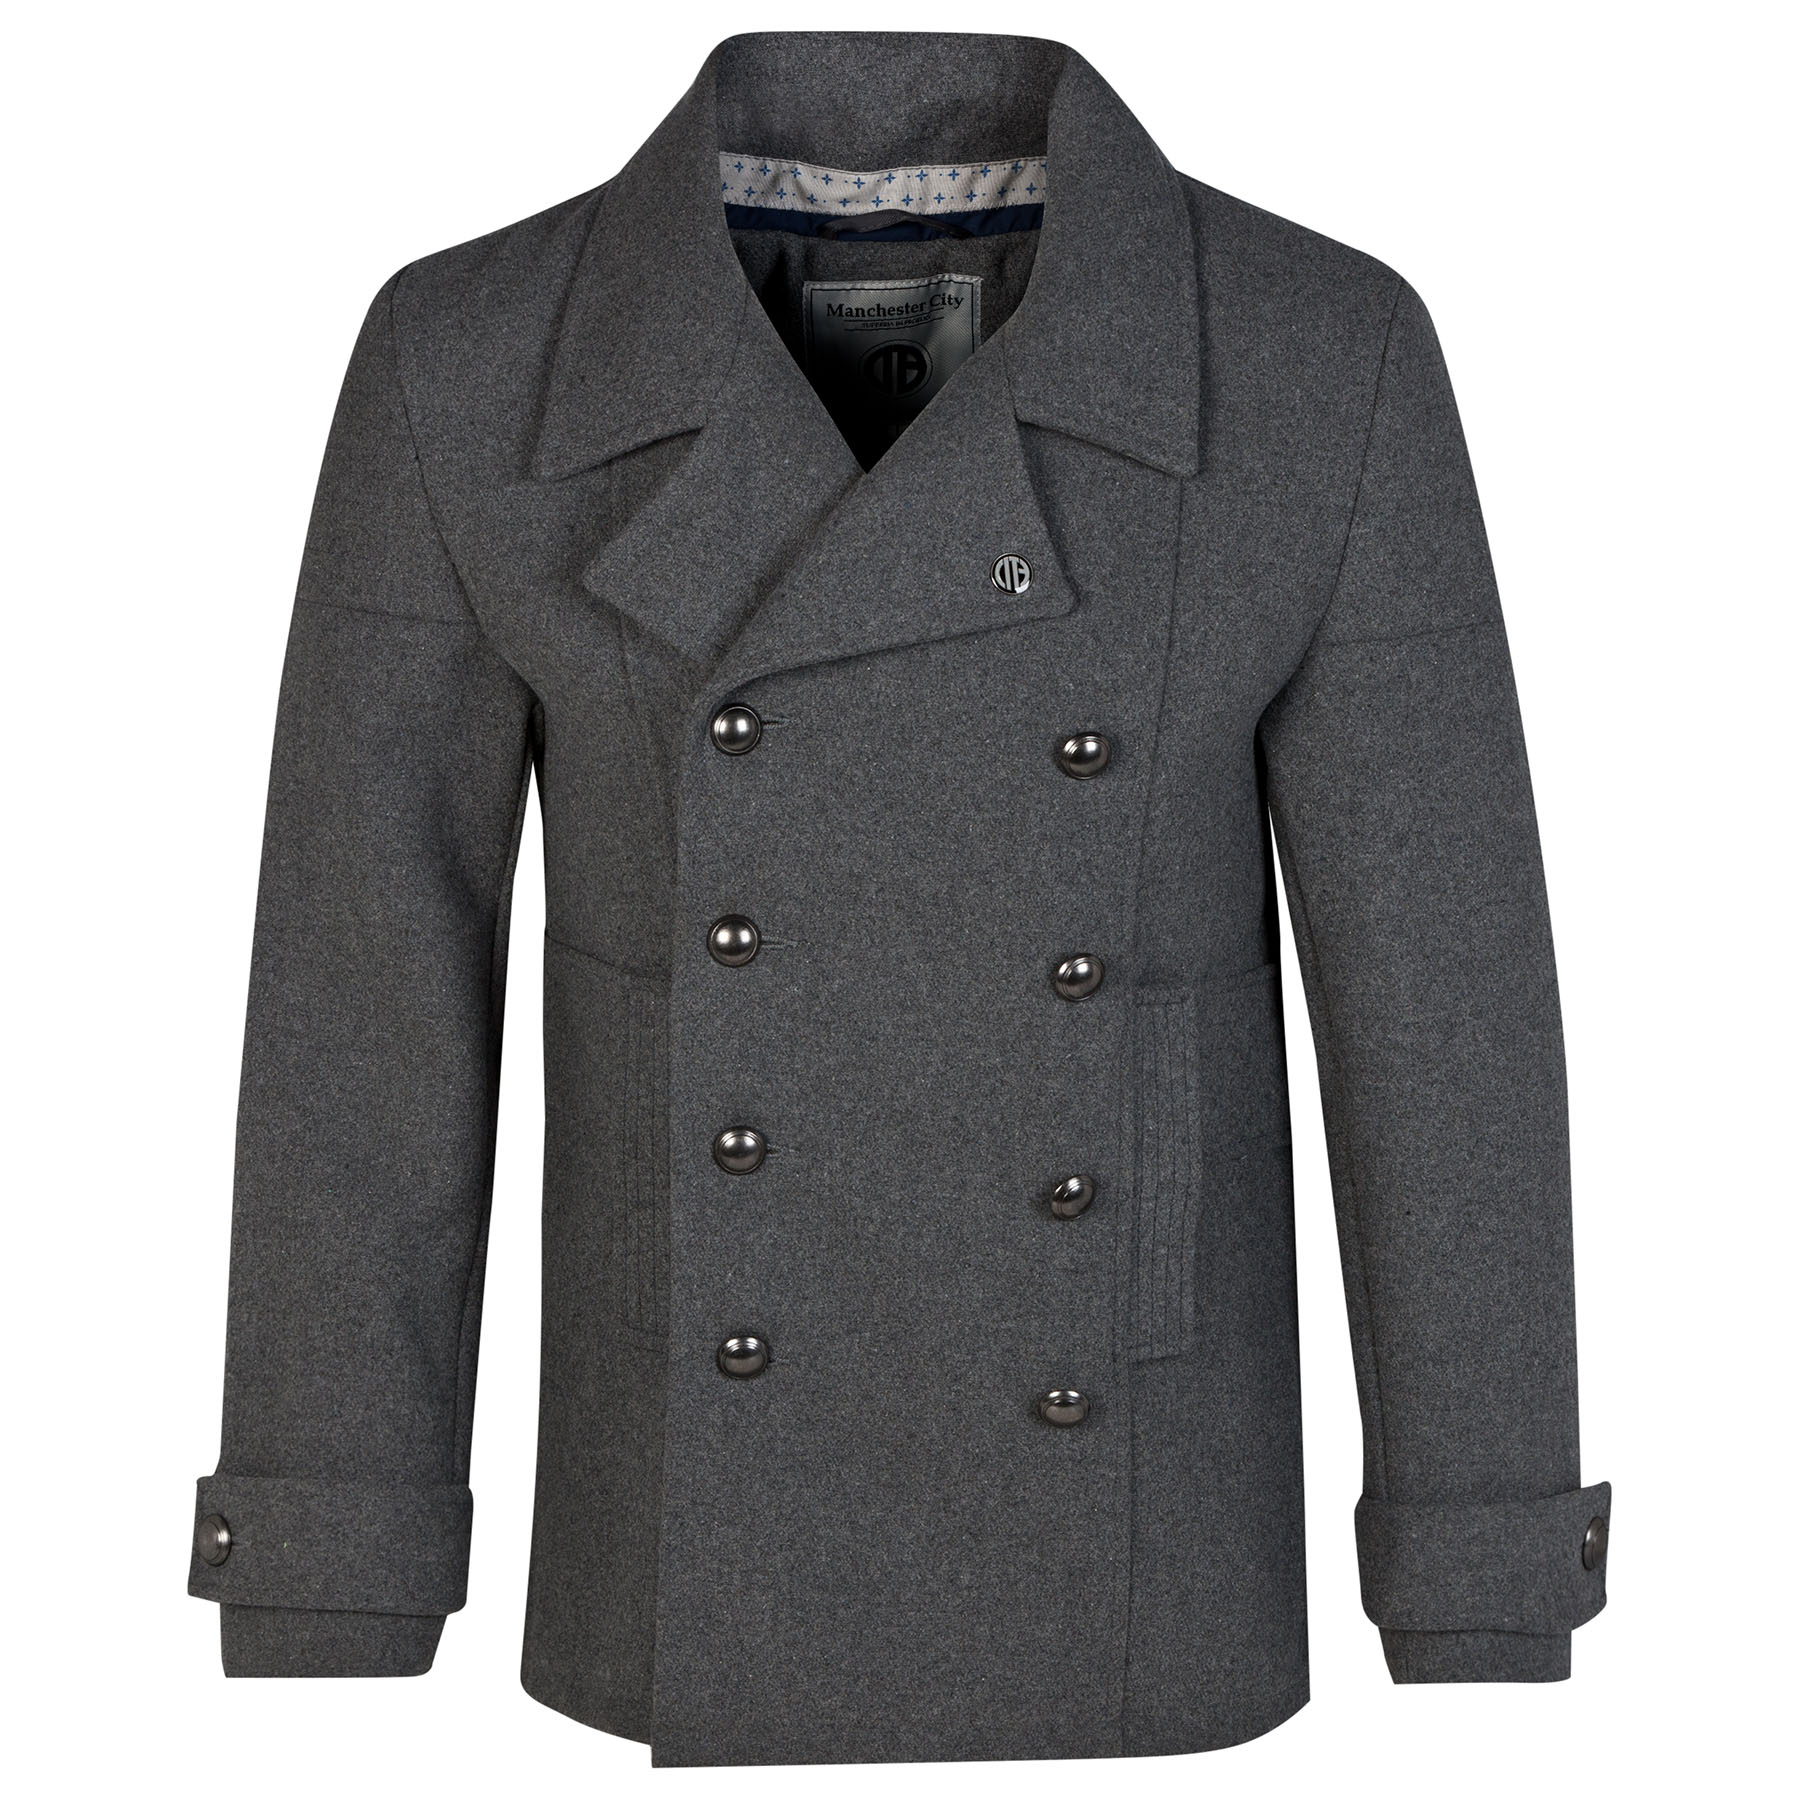 Manchester City Pea Coat - Charcoal - Mens